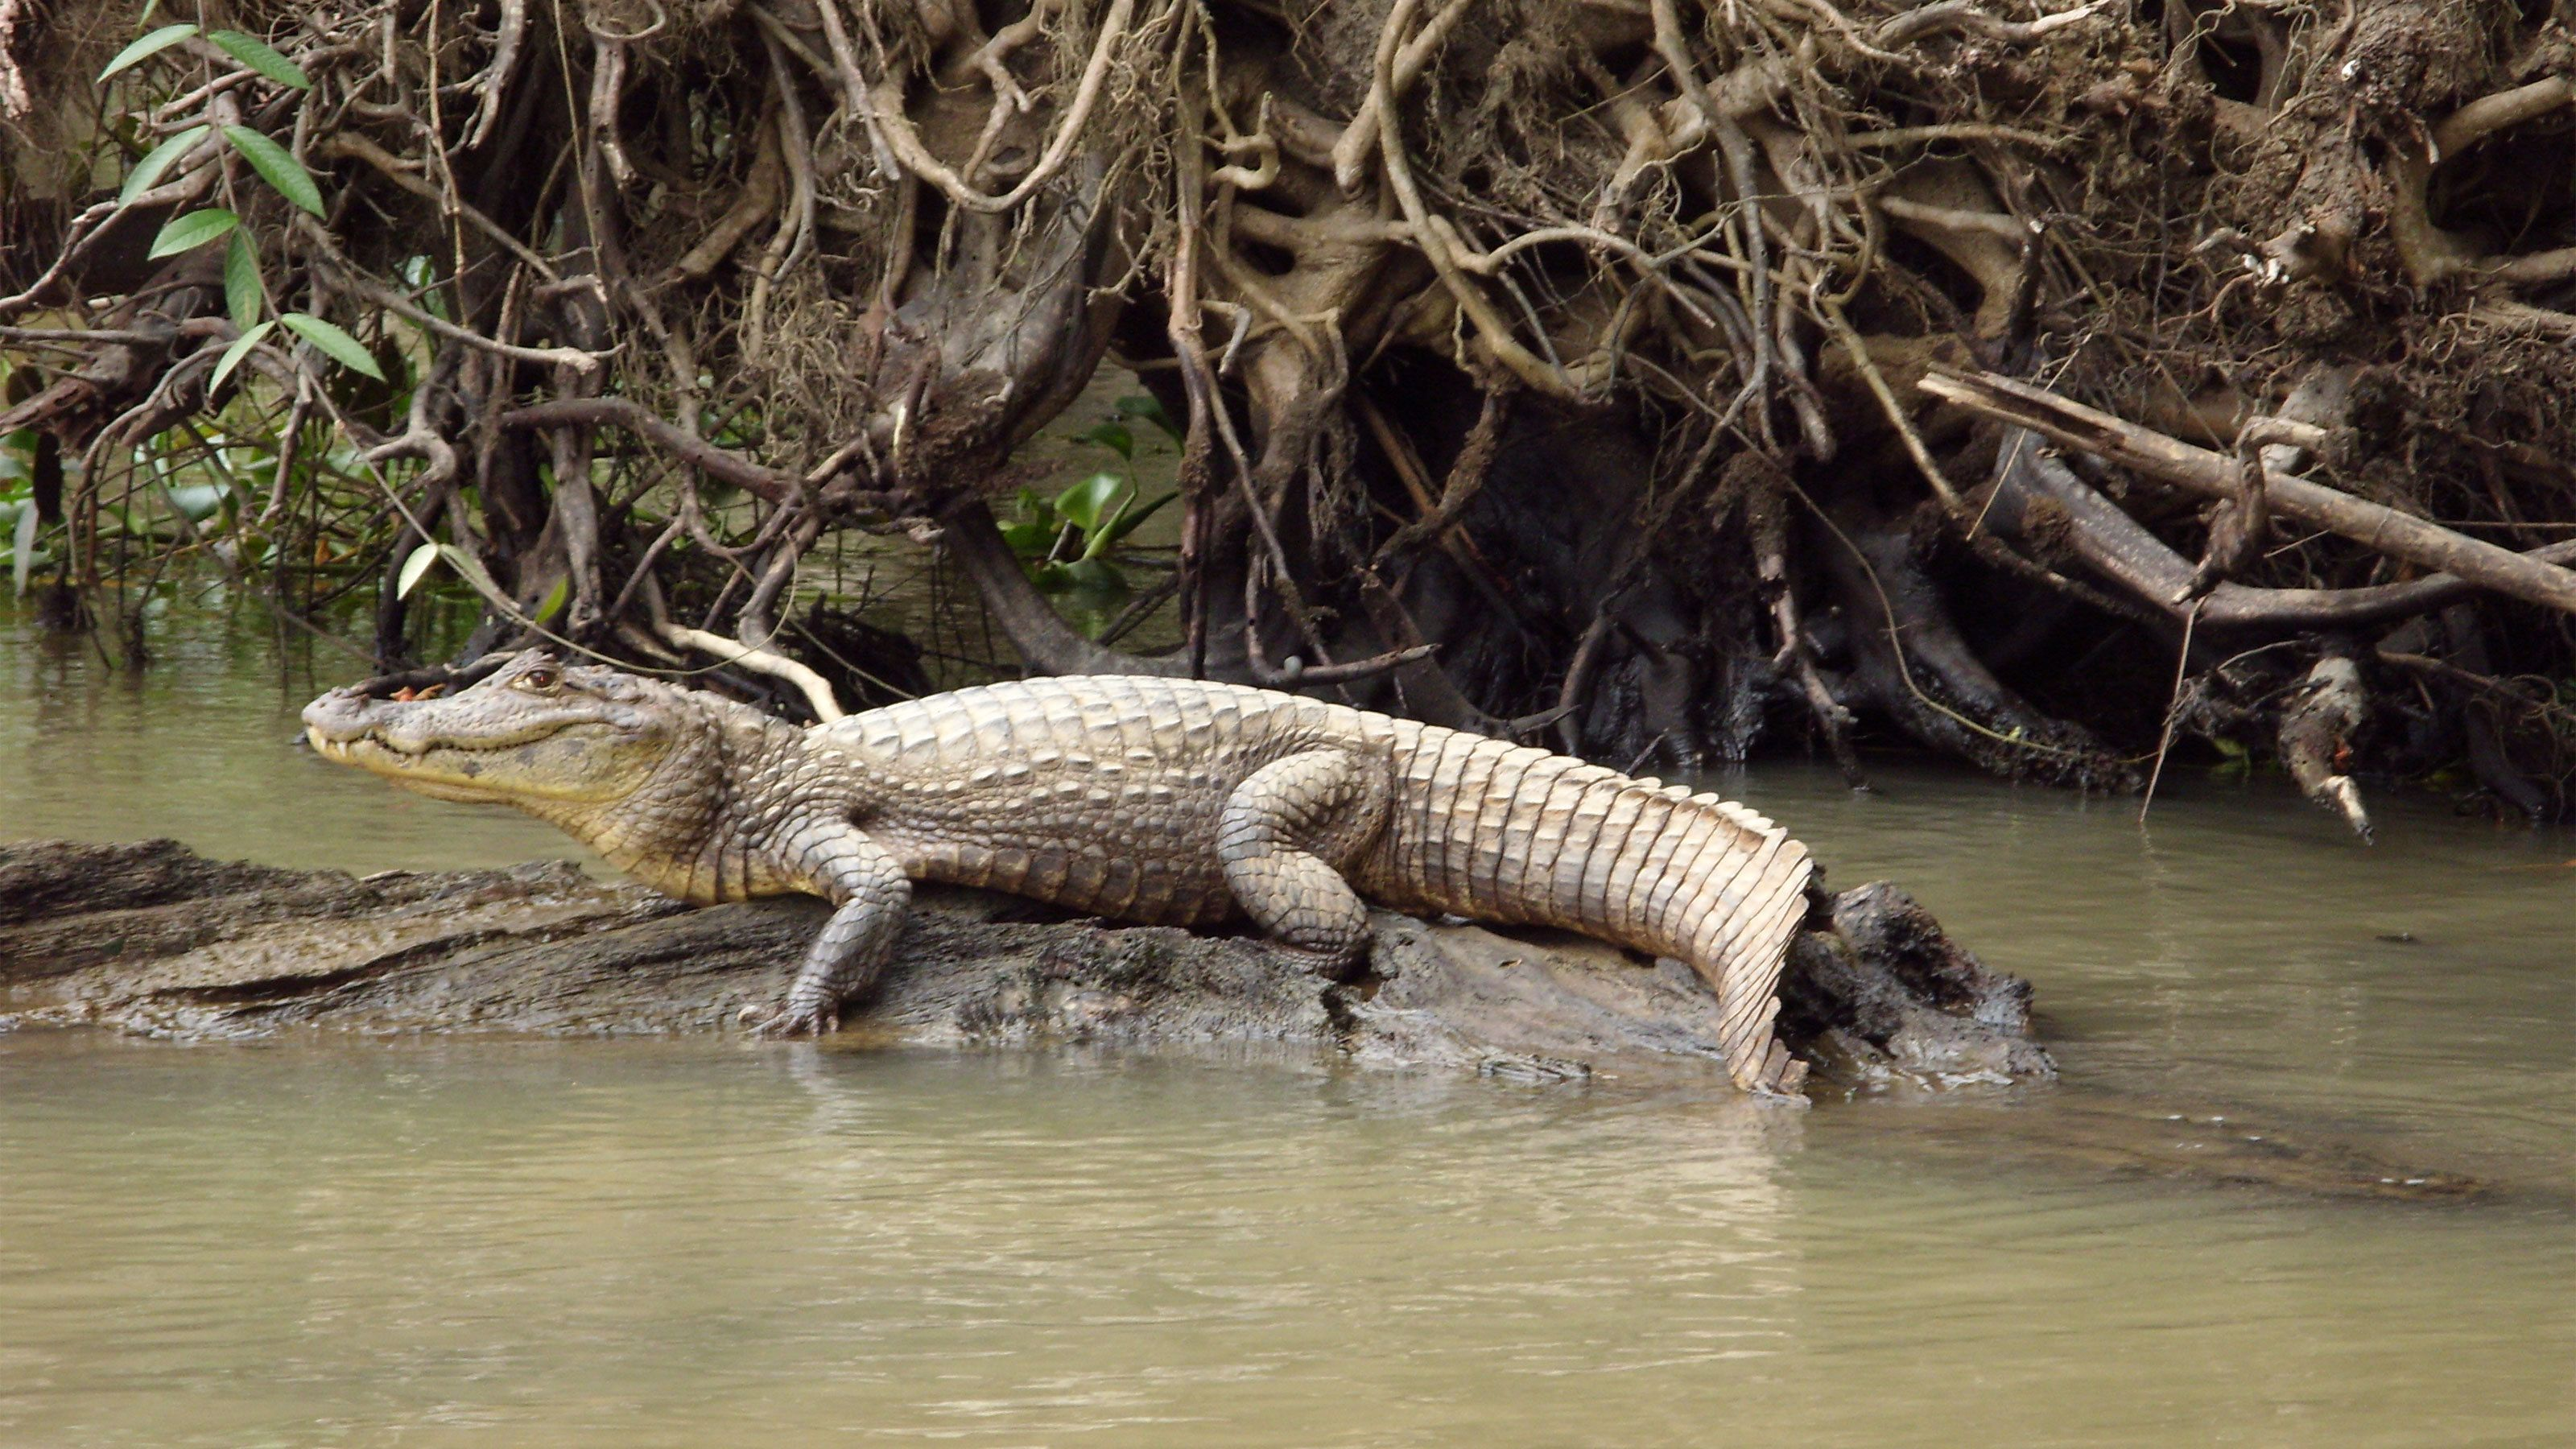 Crocodile resting on a log in the waters of Tortuguero National Park in Costa Rica